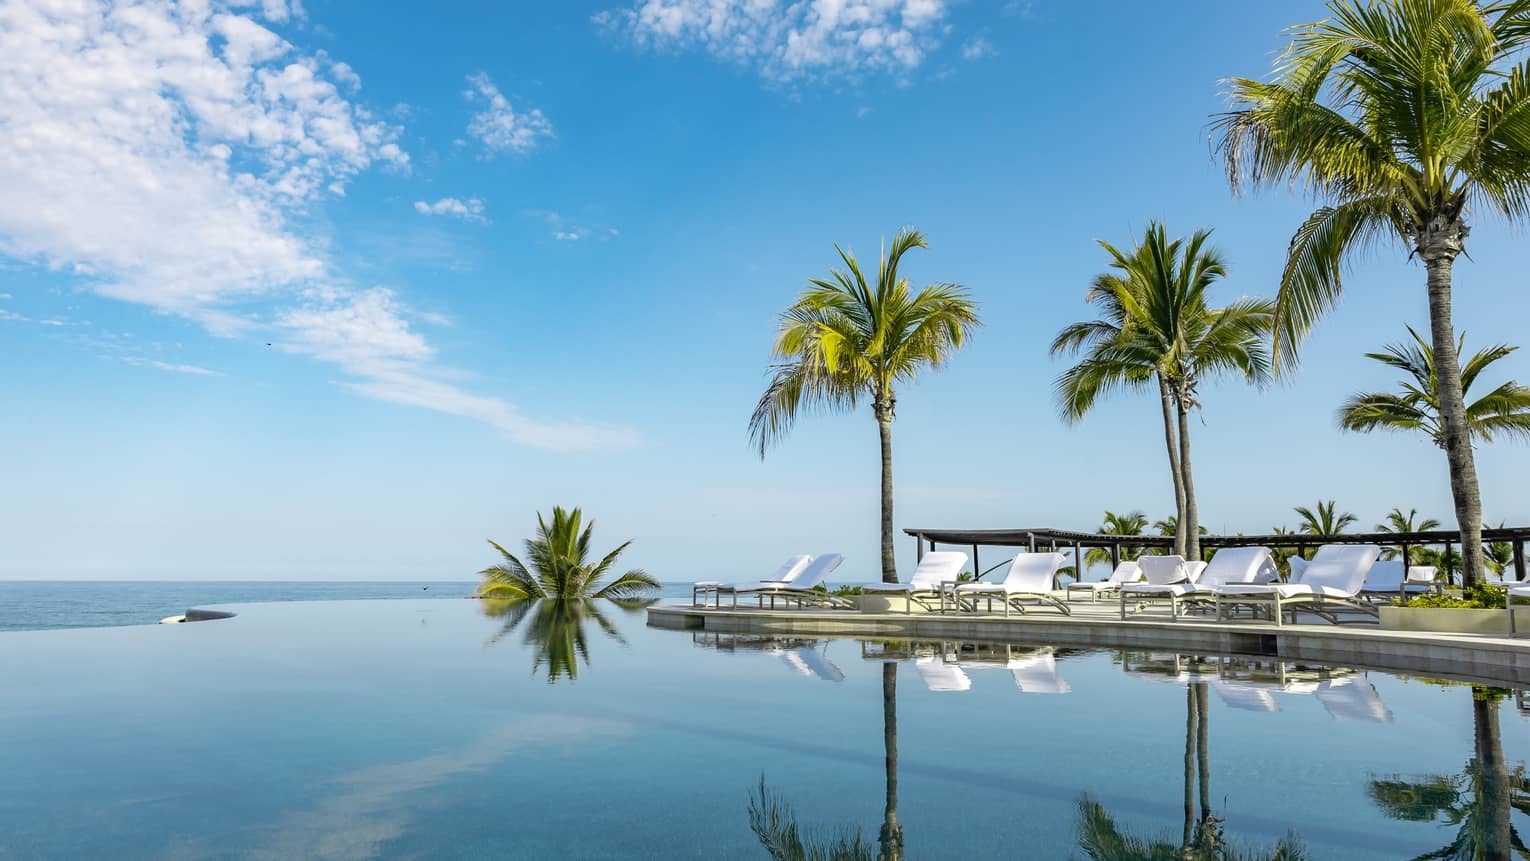 A calm infinity pool reflects the blue sky, clouds and palm trees